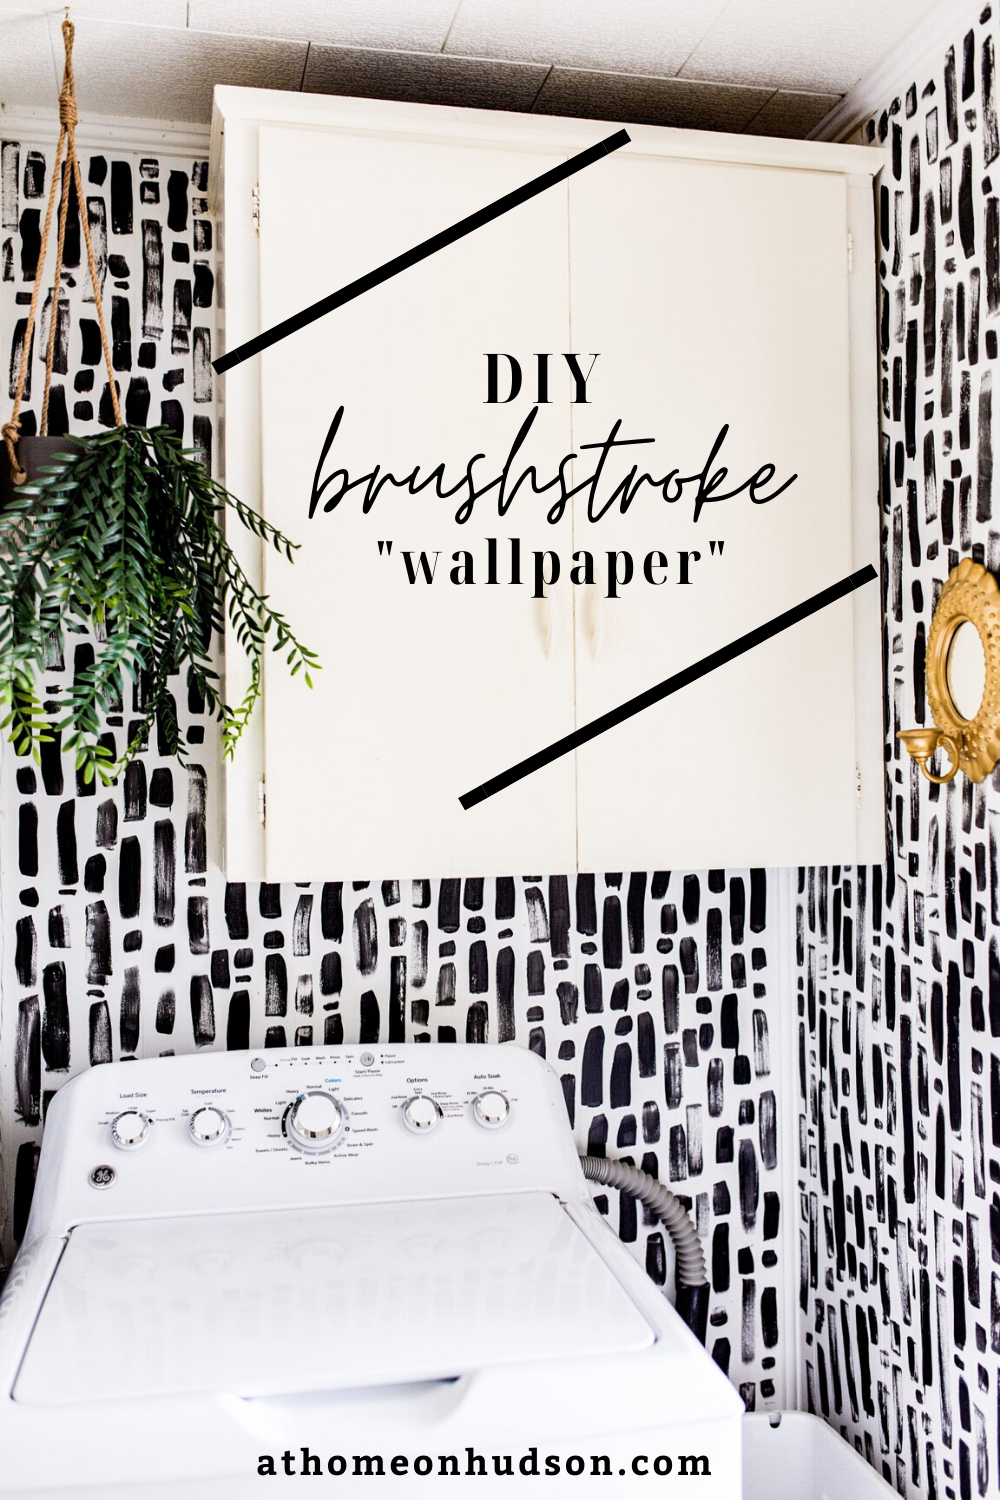 Can't find a wallpaper you like? Look no further than this $0.00 home upgrade DIY brushstroke faux wallpaper hack! It only takes a couple of hours and can be done with supplies you have on hand.